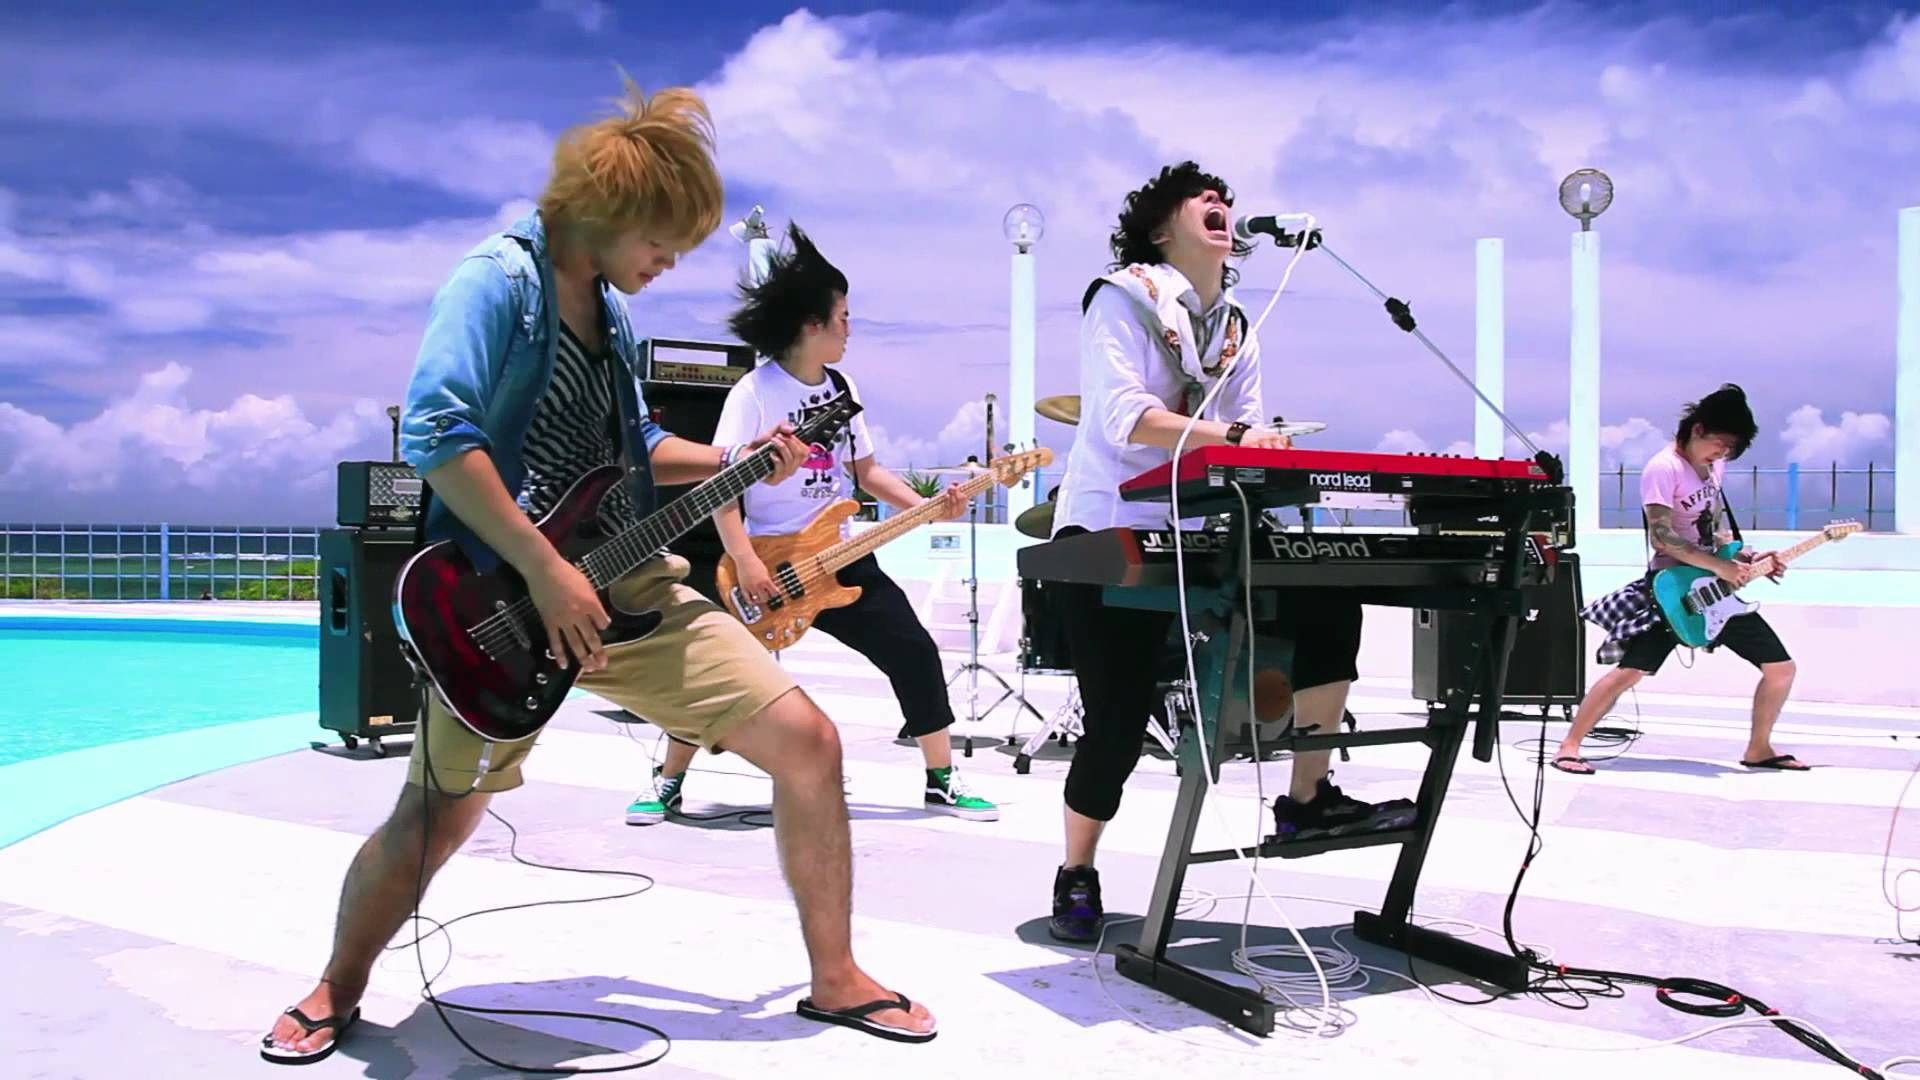 Pv Jump Around Fear And Loathing In Las Vegas ラスベガス